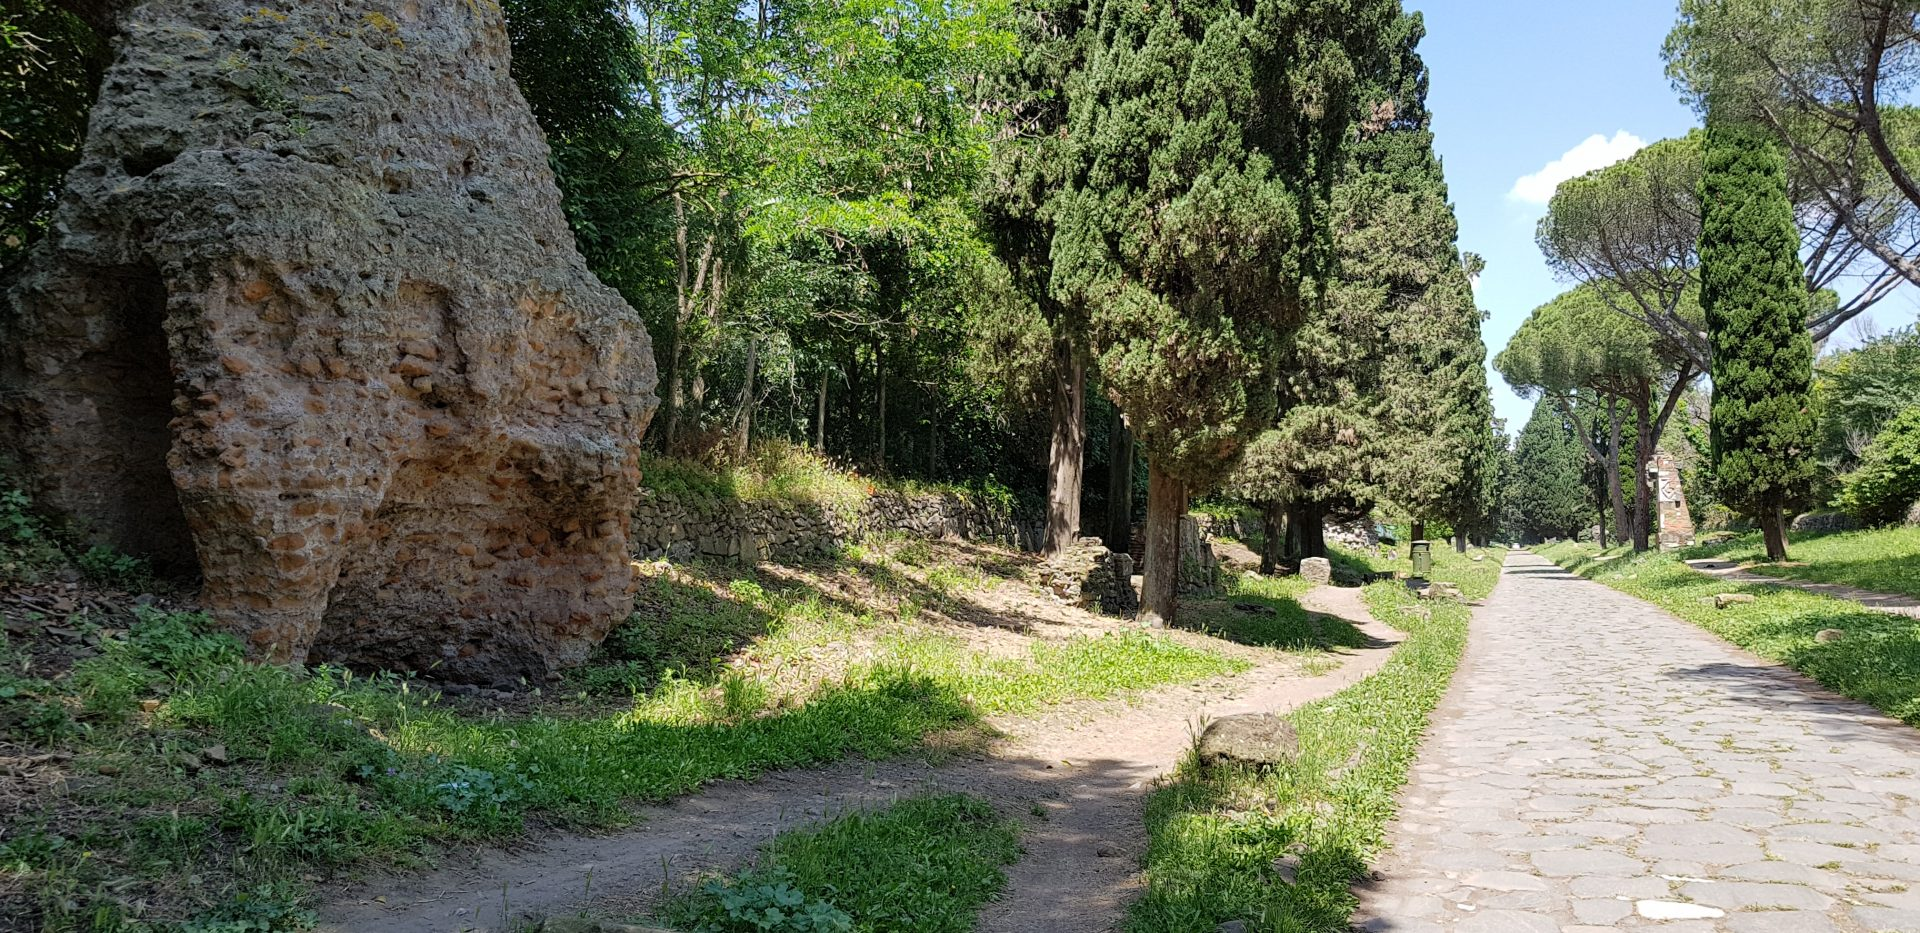 VIDEO: VIA APPIA ANTICA, ROMA (ITALIA)